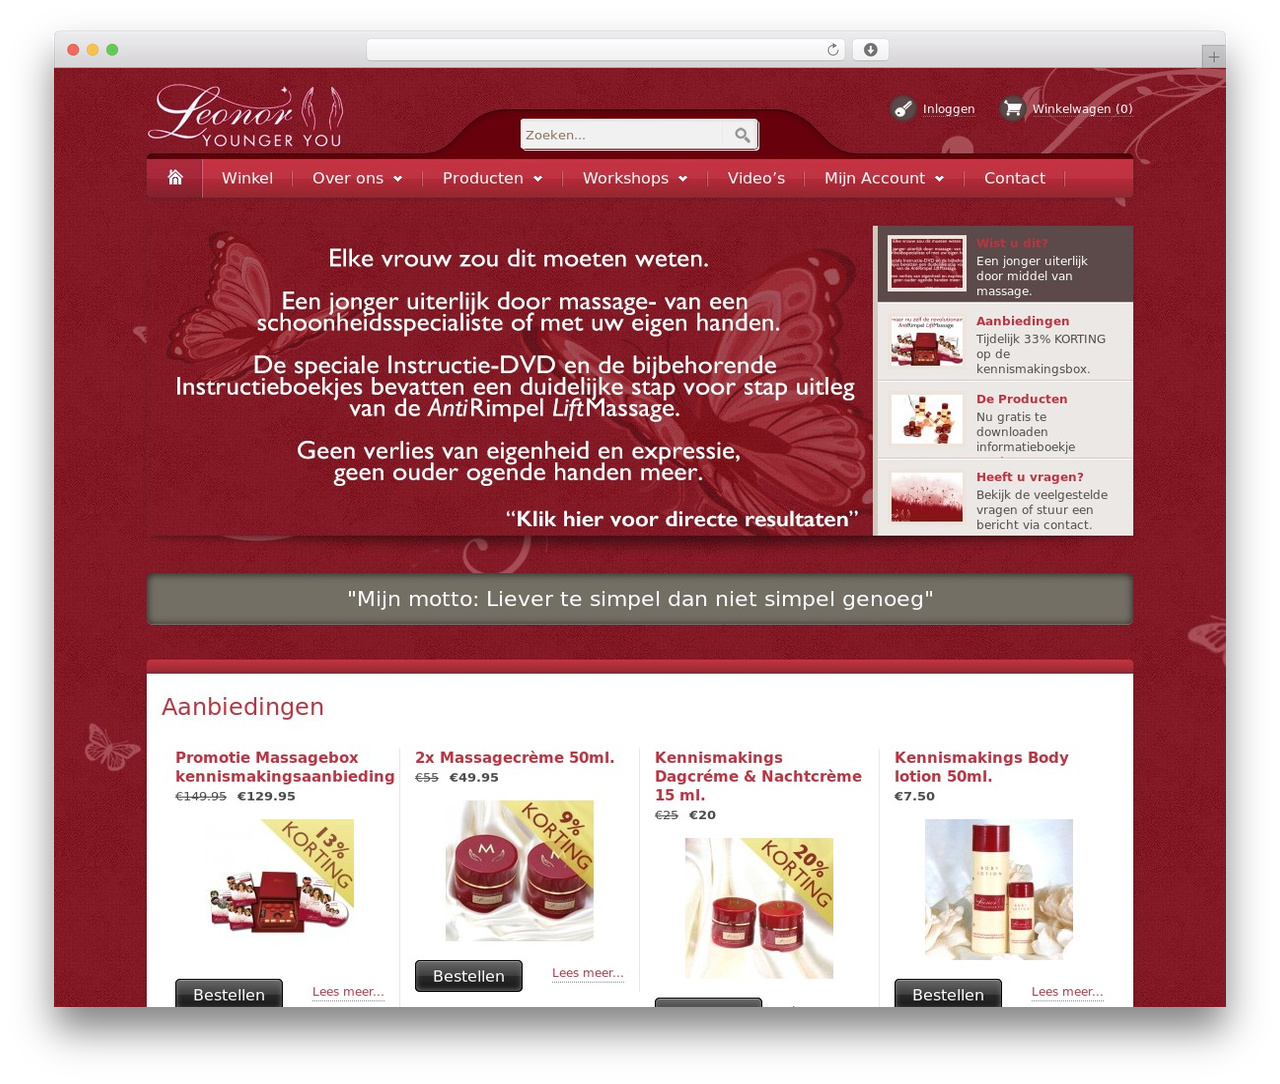 Bellissima WordPress website template - leonoryoungeryou.nl